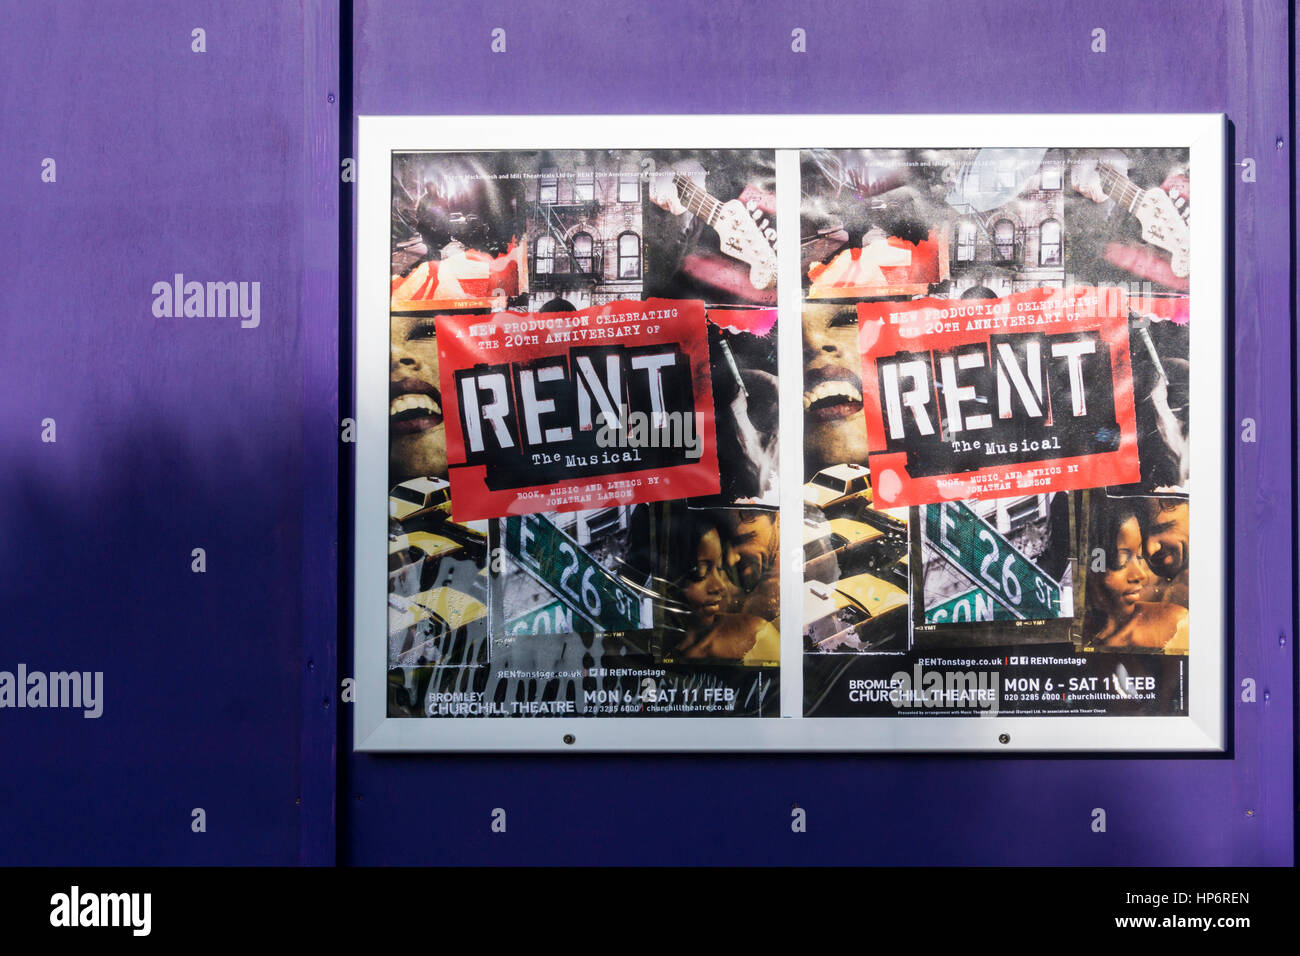 https www alamy com stock photo posters for the 20th anniversary production of rent the musical by 134145165 html